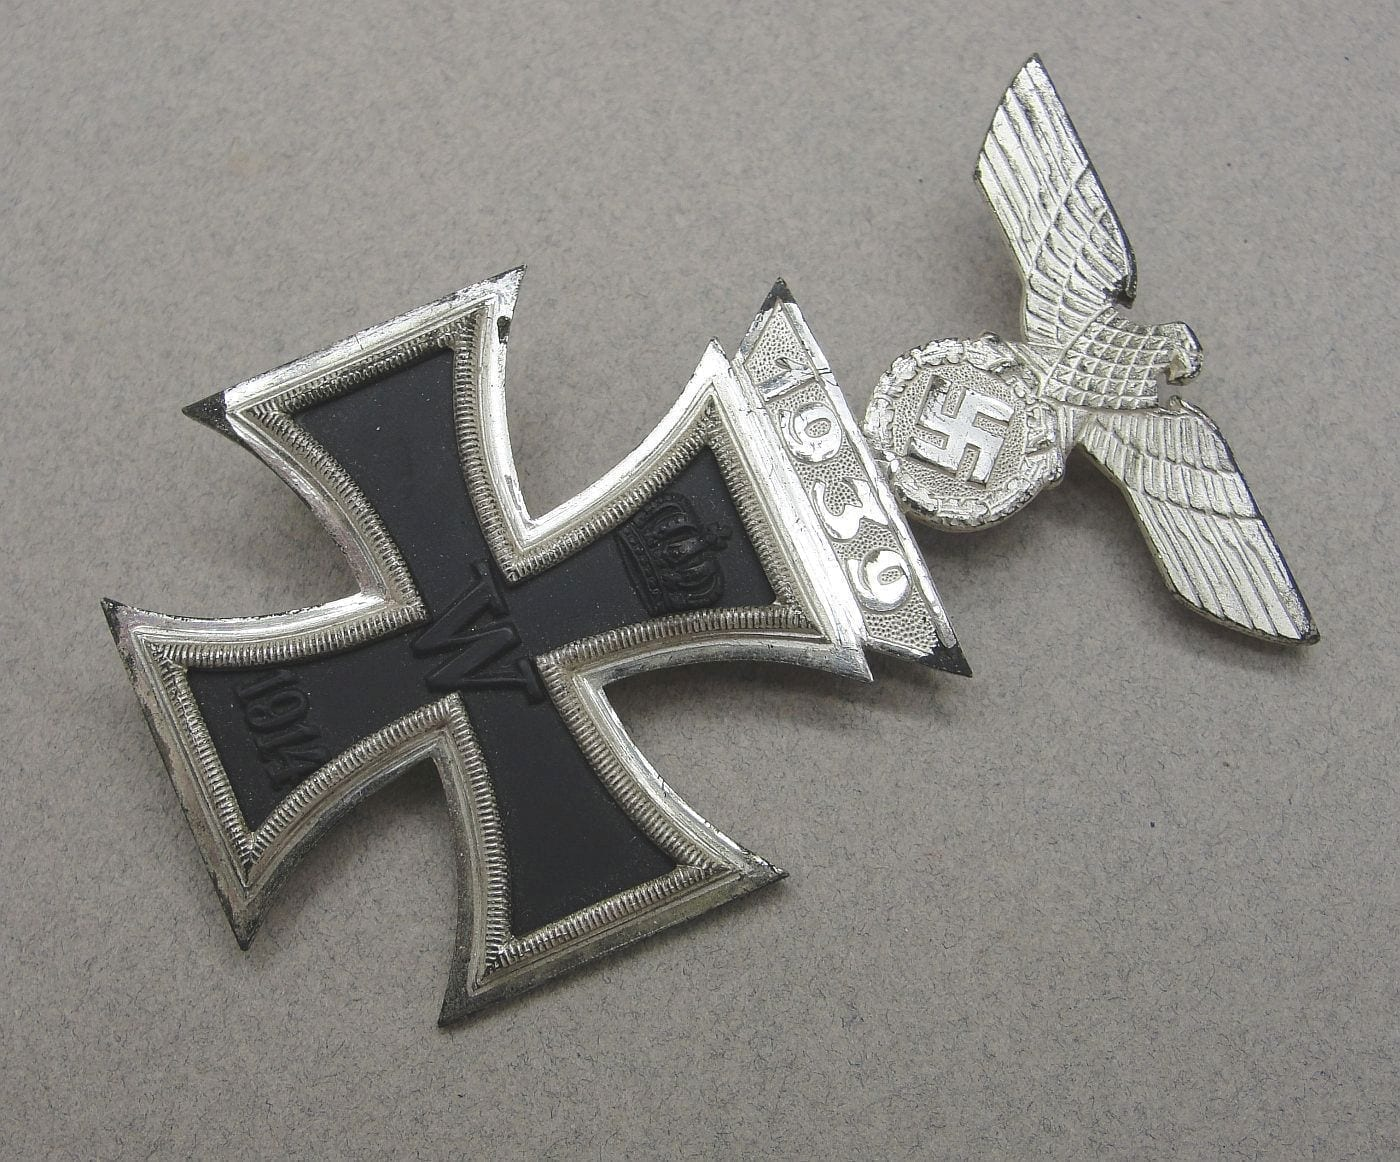 Combined 1914 Iron Cross First Class and 1939 First Class Spange by Deumer - Choice!!